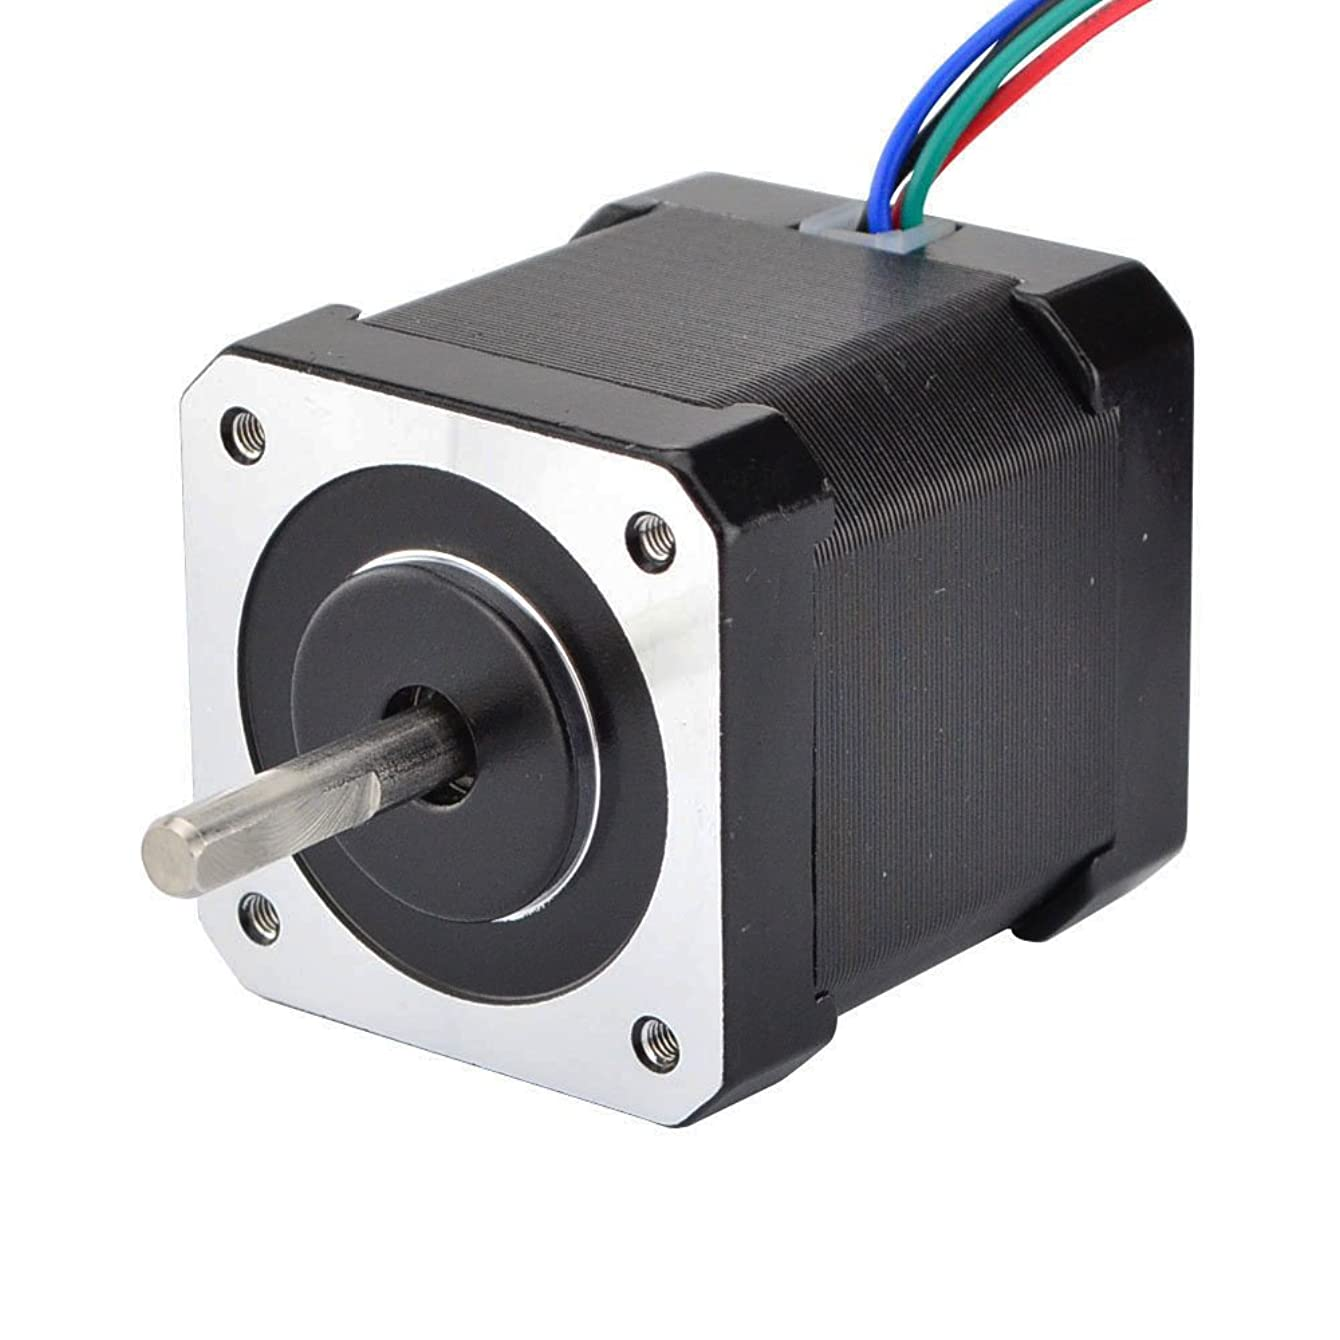 STEPPERONLINE Nema 17 Stepper Motor Bipolar 2A 59Ncm(84oz.in) 48mm Body 4-lead W/ 1m Cable and Connector compatible with 3D Printer/CNC